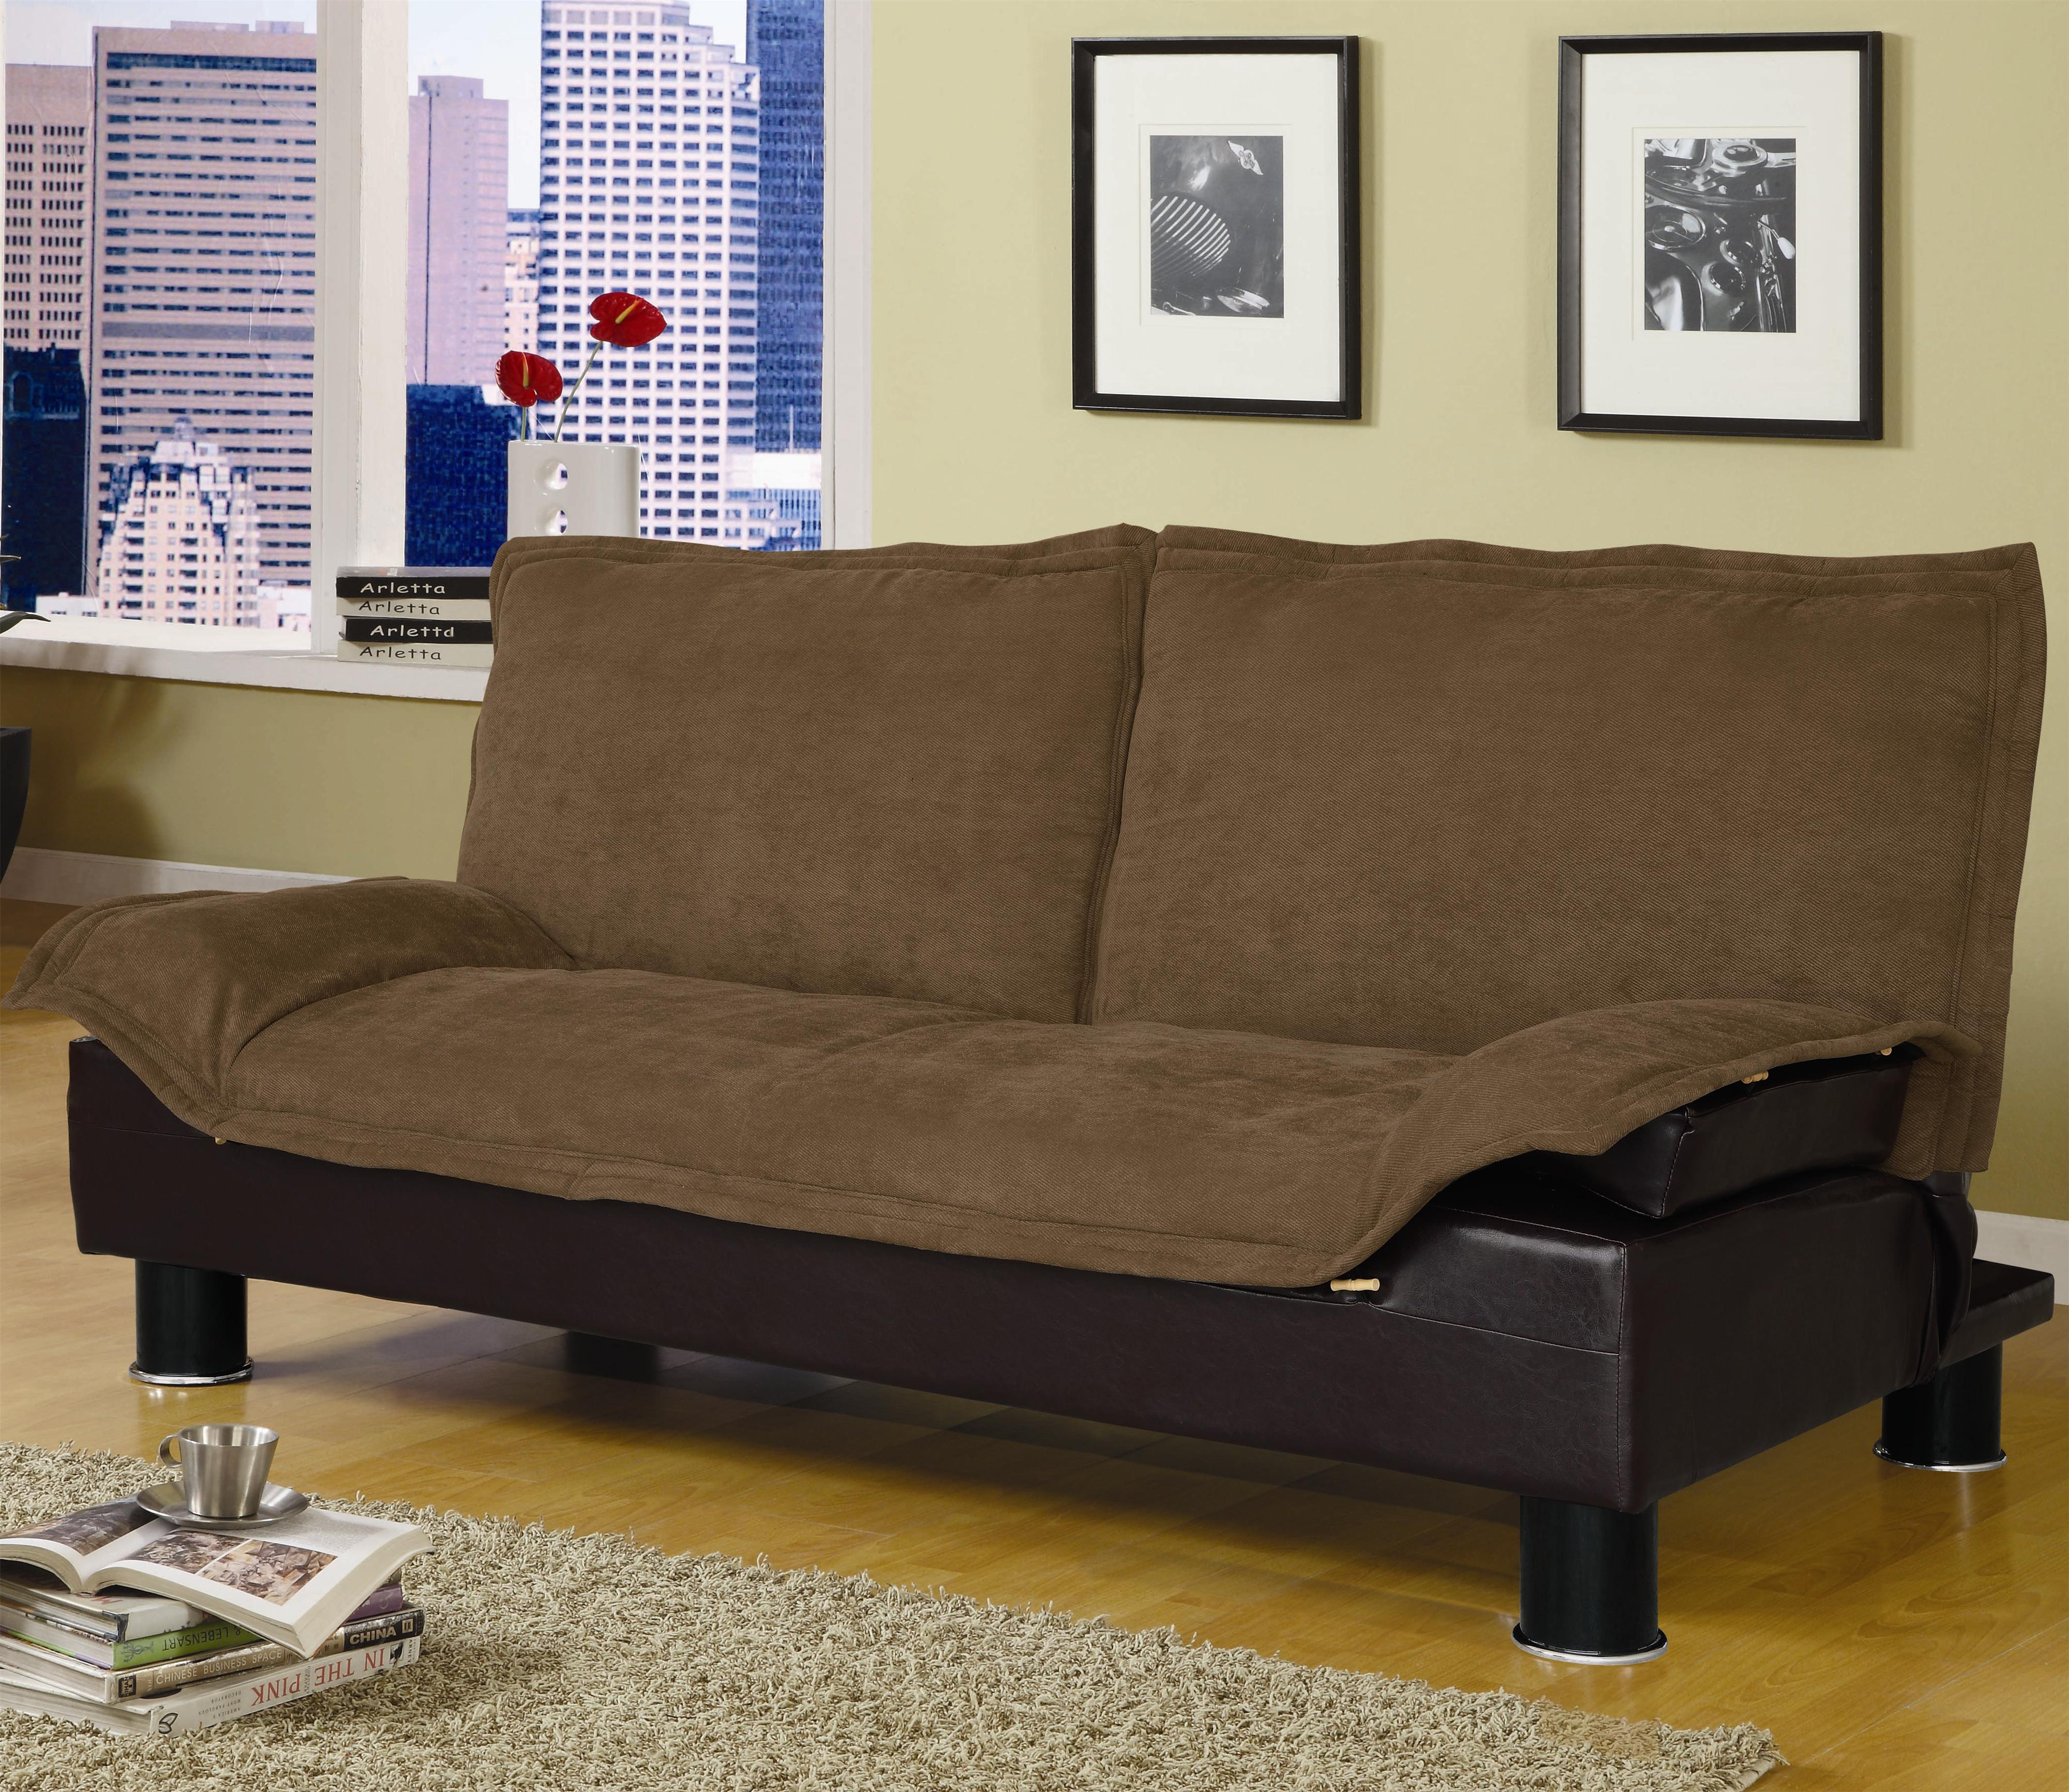 100 Convertible Futon Sofa